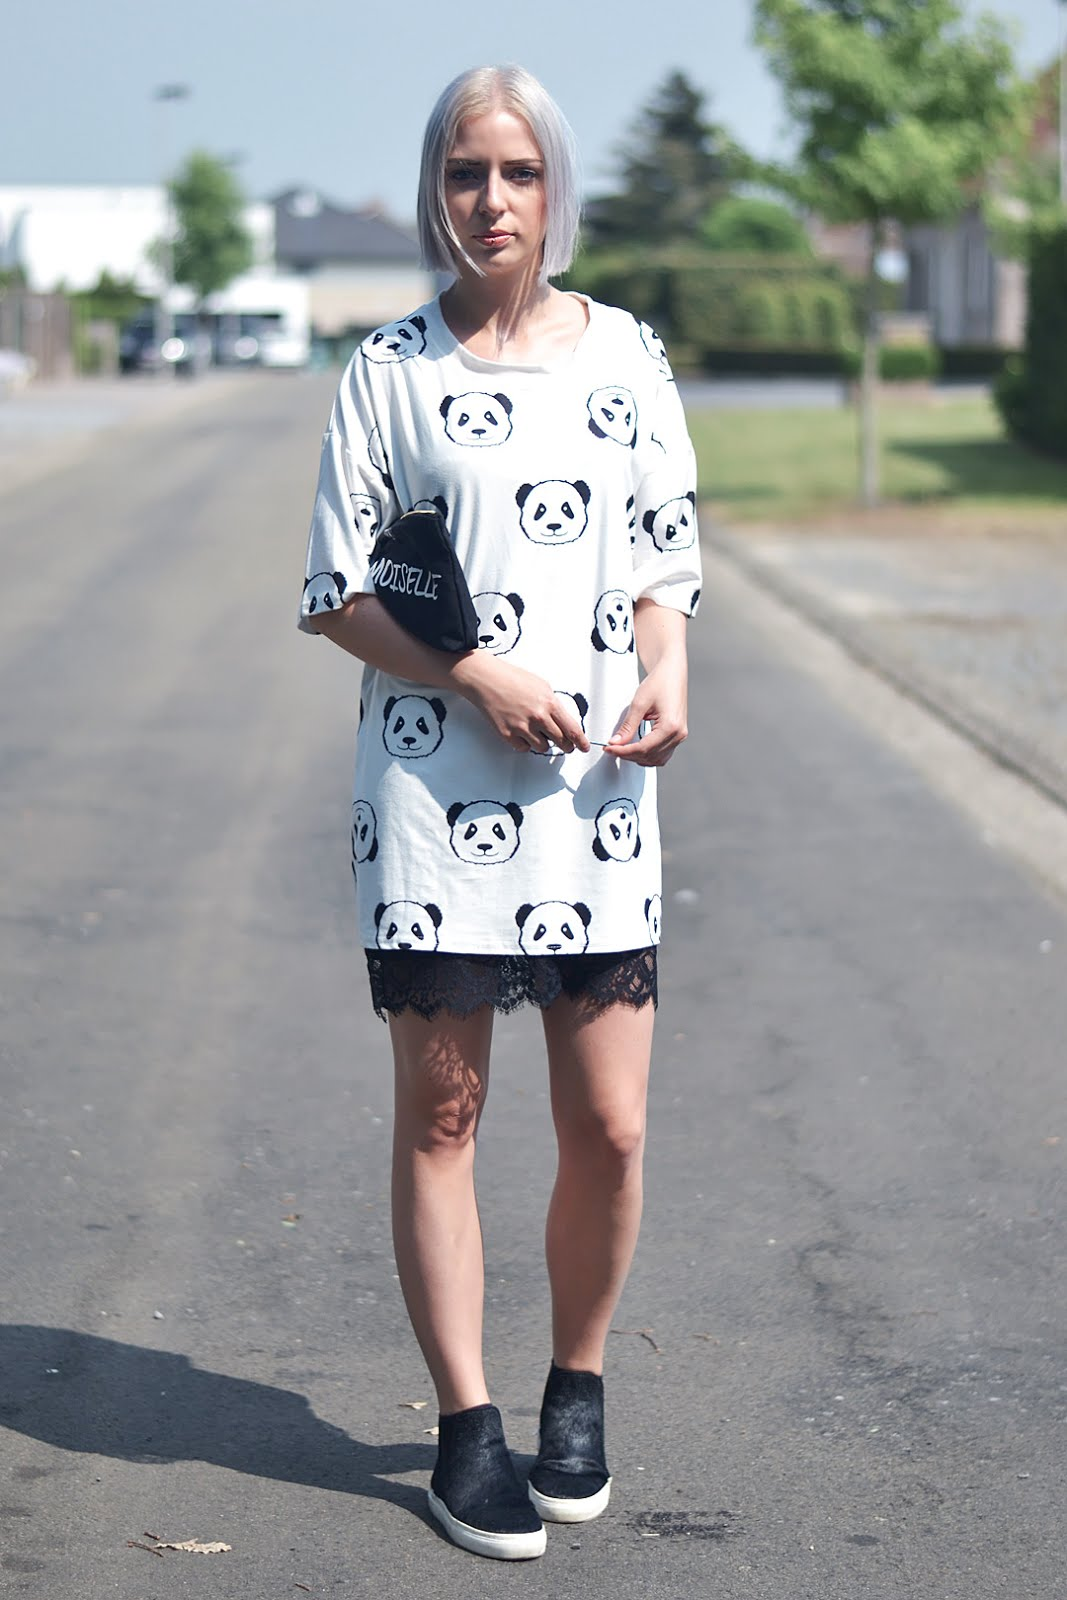 Panda, t-shirt dress, black and white, lace dress, pony hair slip on, zara, sheinside, minimal